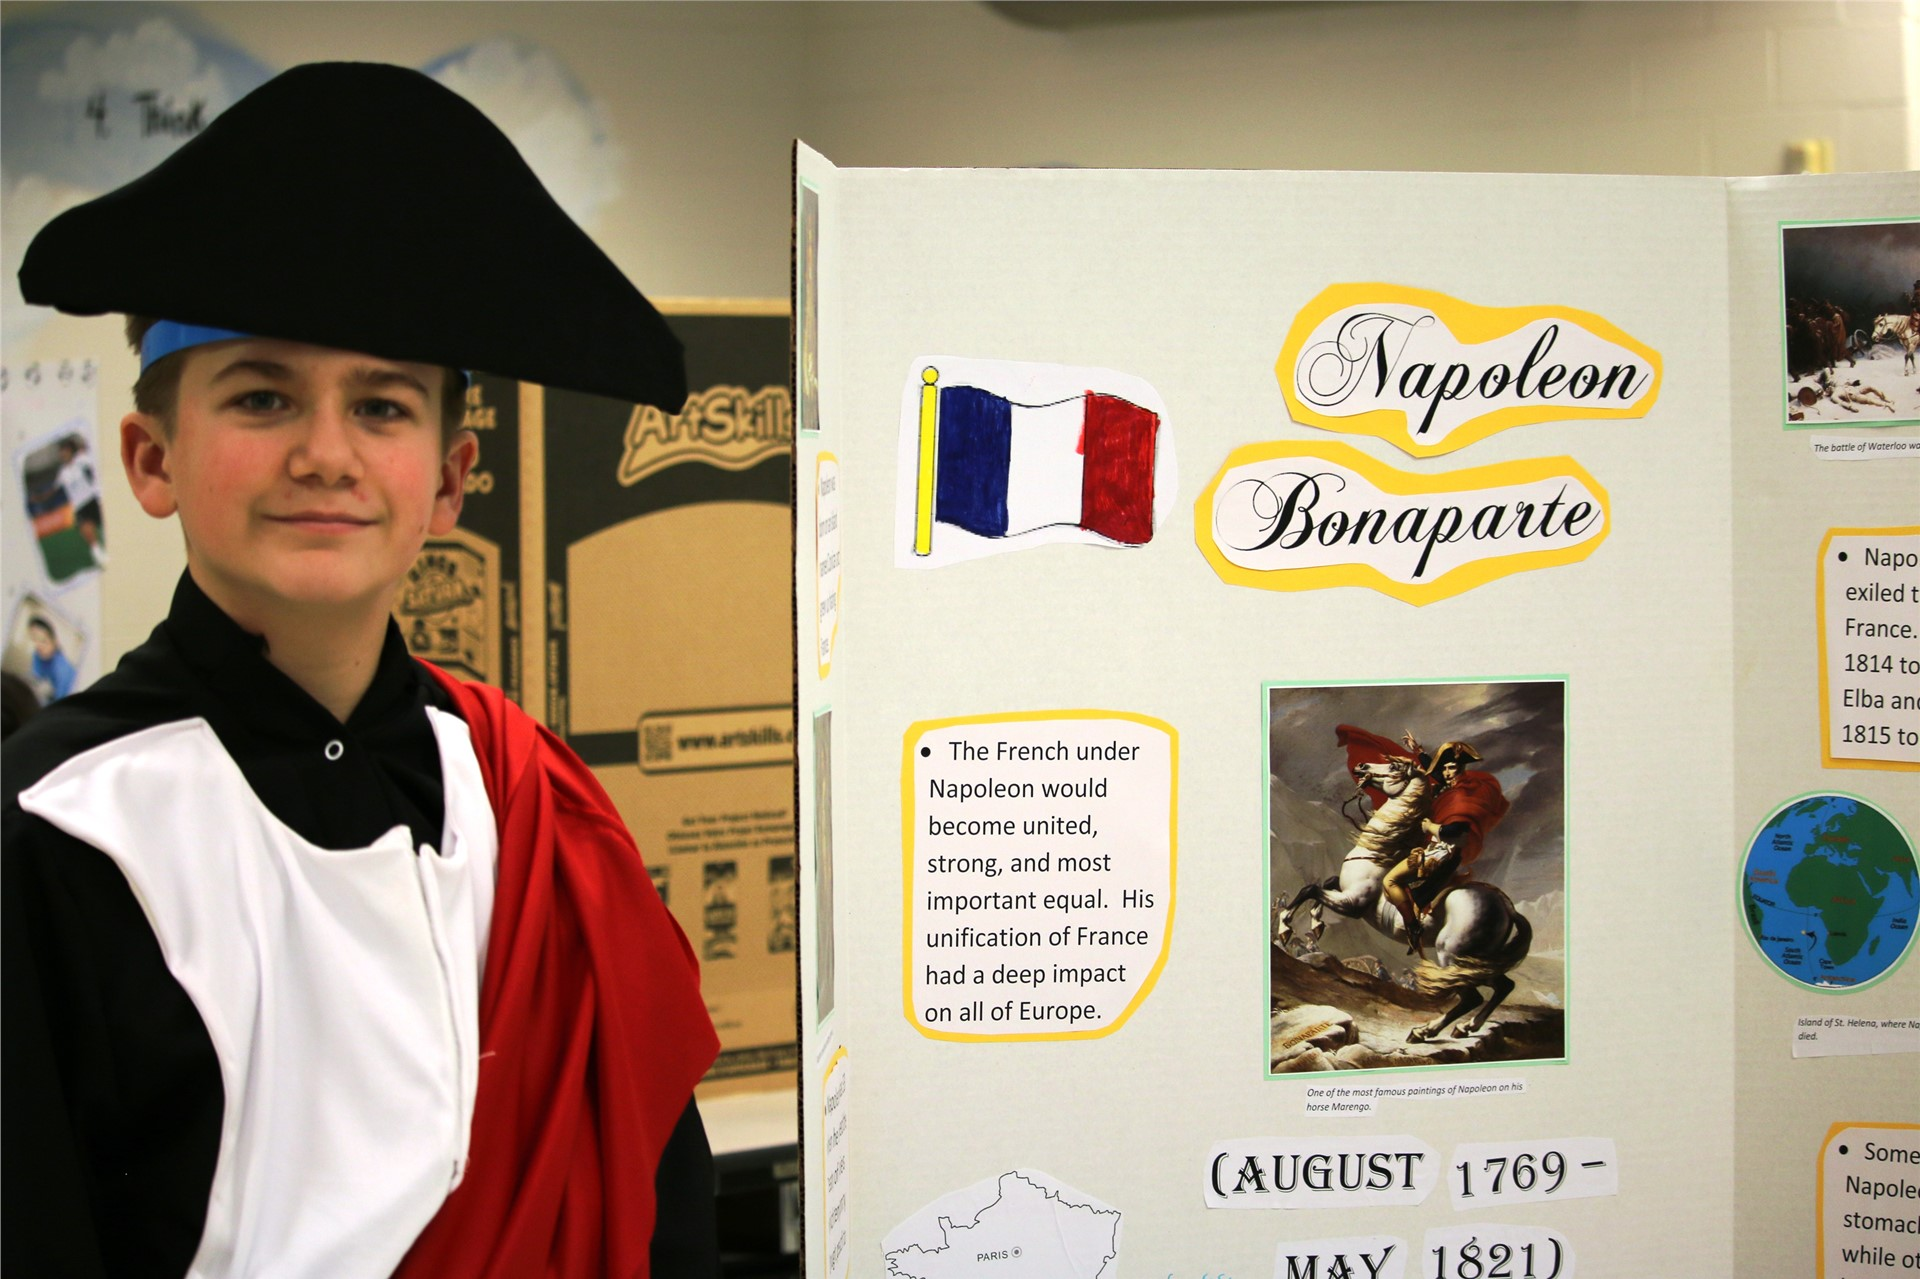 ACIC student shares history from the late 18th Century.